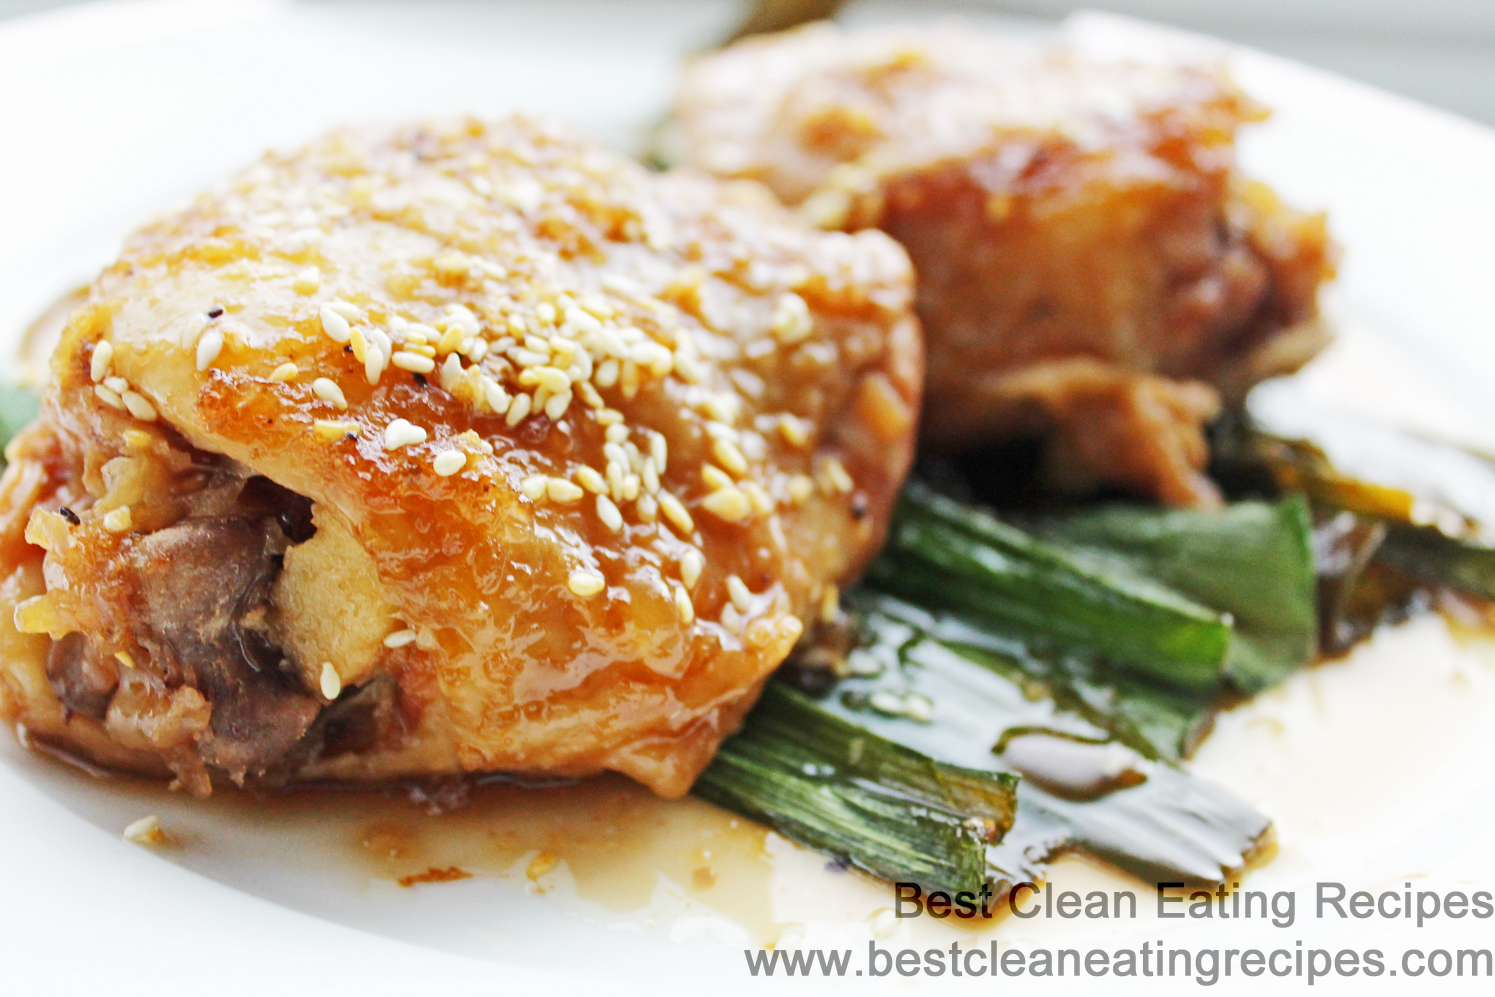 Clean Eating Recipe – Baked Chicken and Leeks in Korean BBQ Sauce